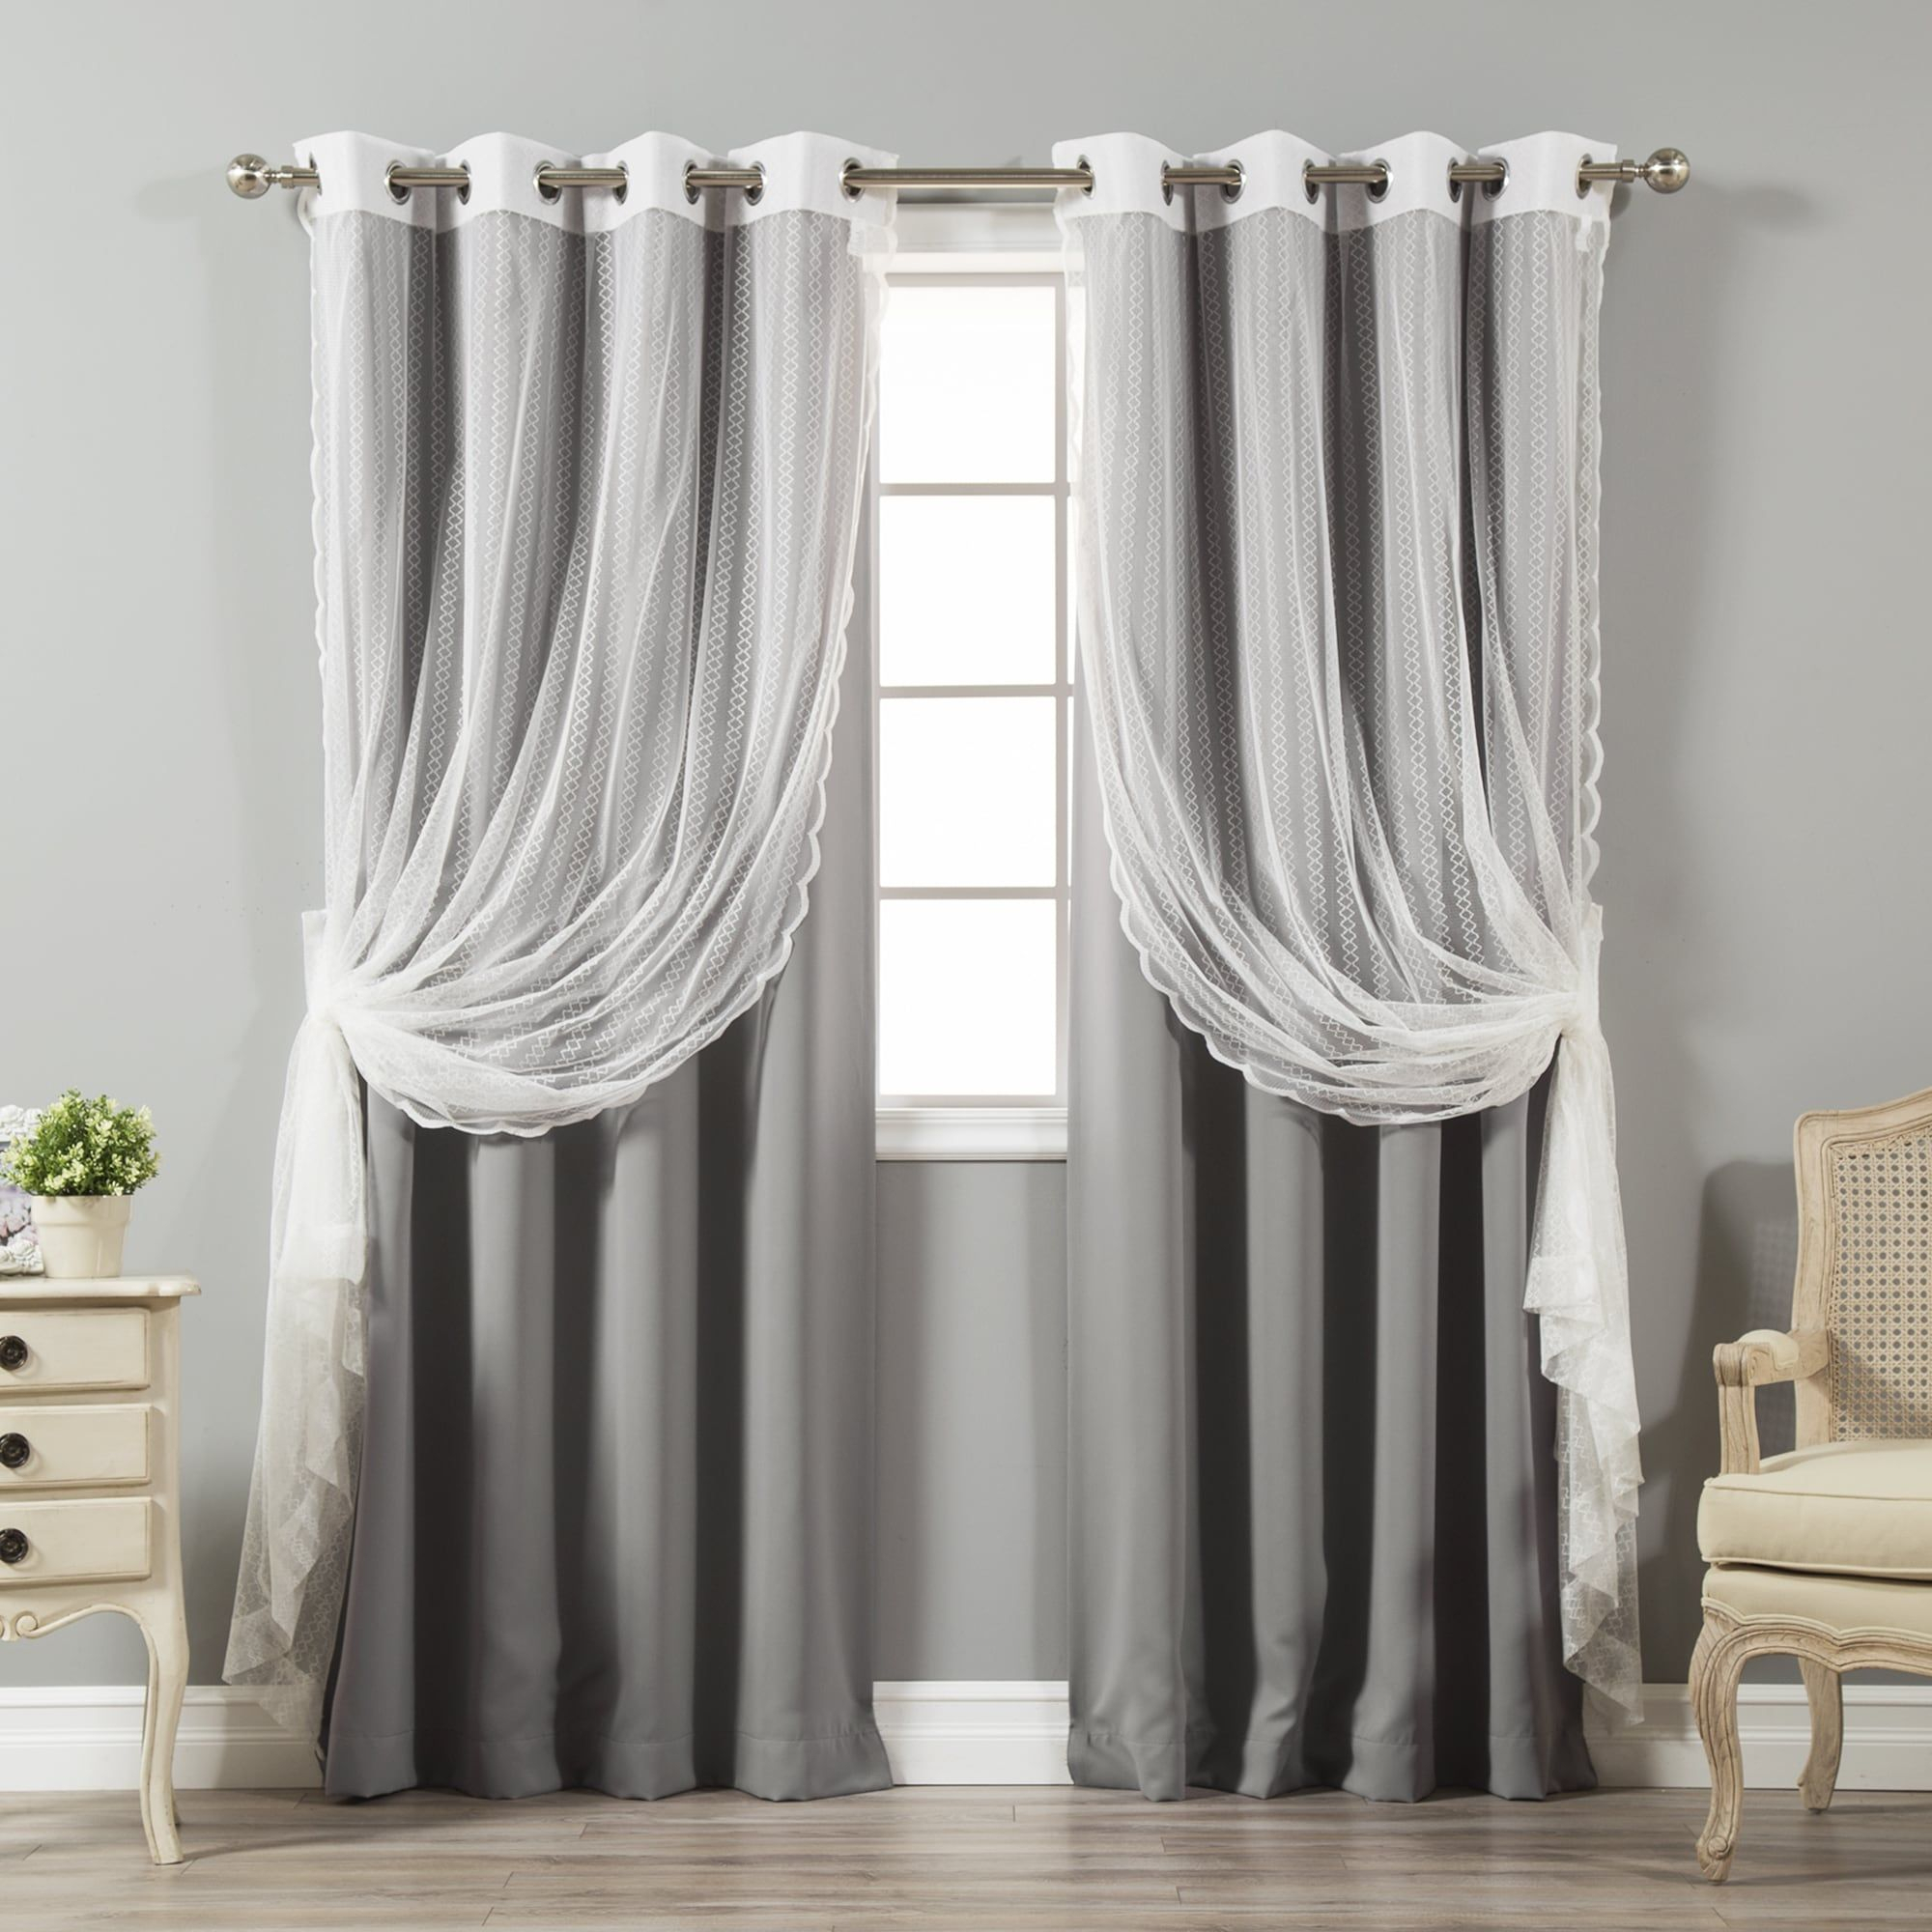 Aurora Home Mix And Match Blackout And Zigzag Lace Curtain Inside Mix And Match Blackout Blackout Curtains Panel Sets (View 5 of 20)